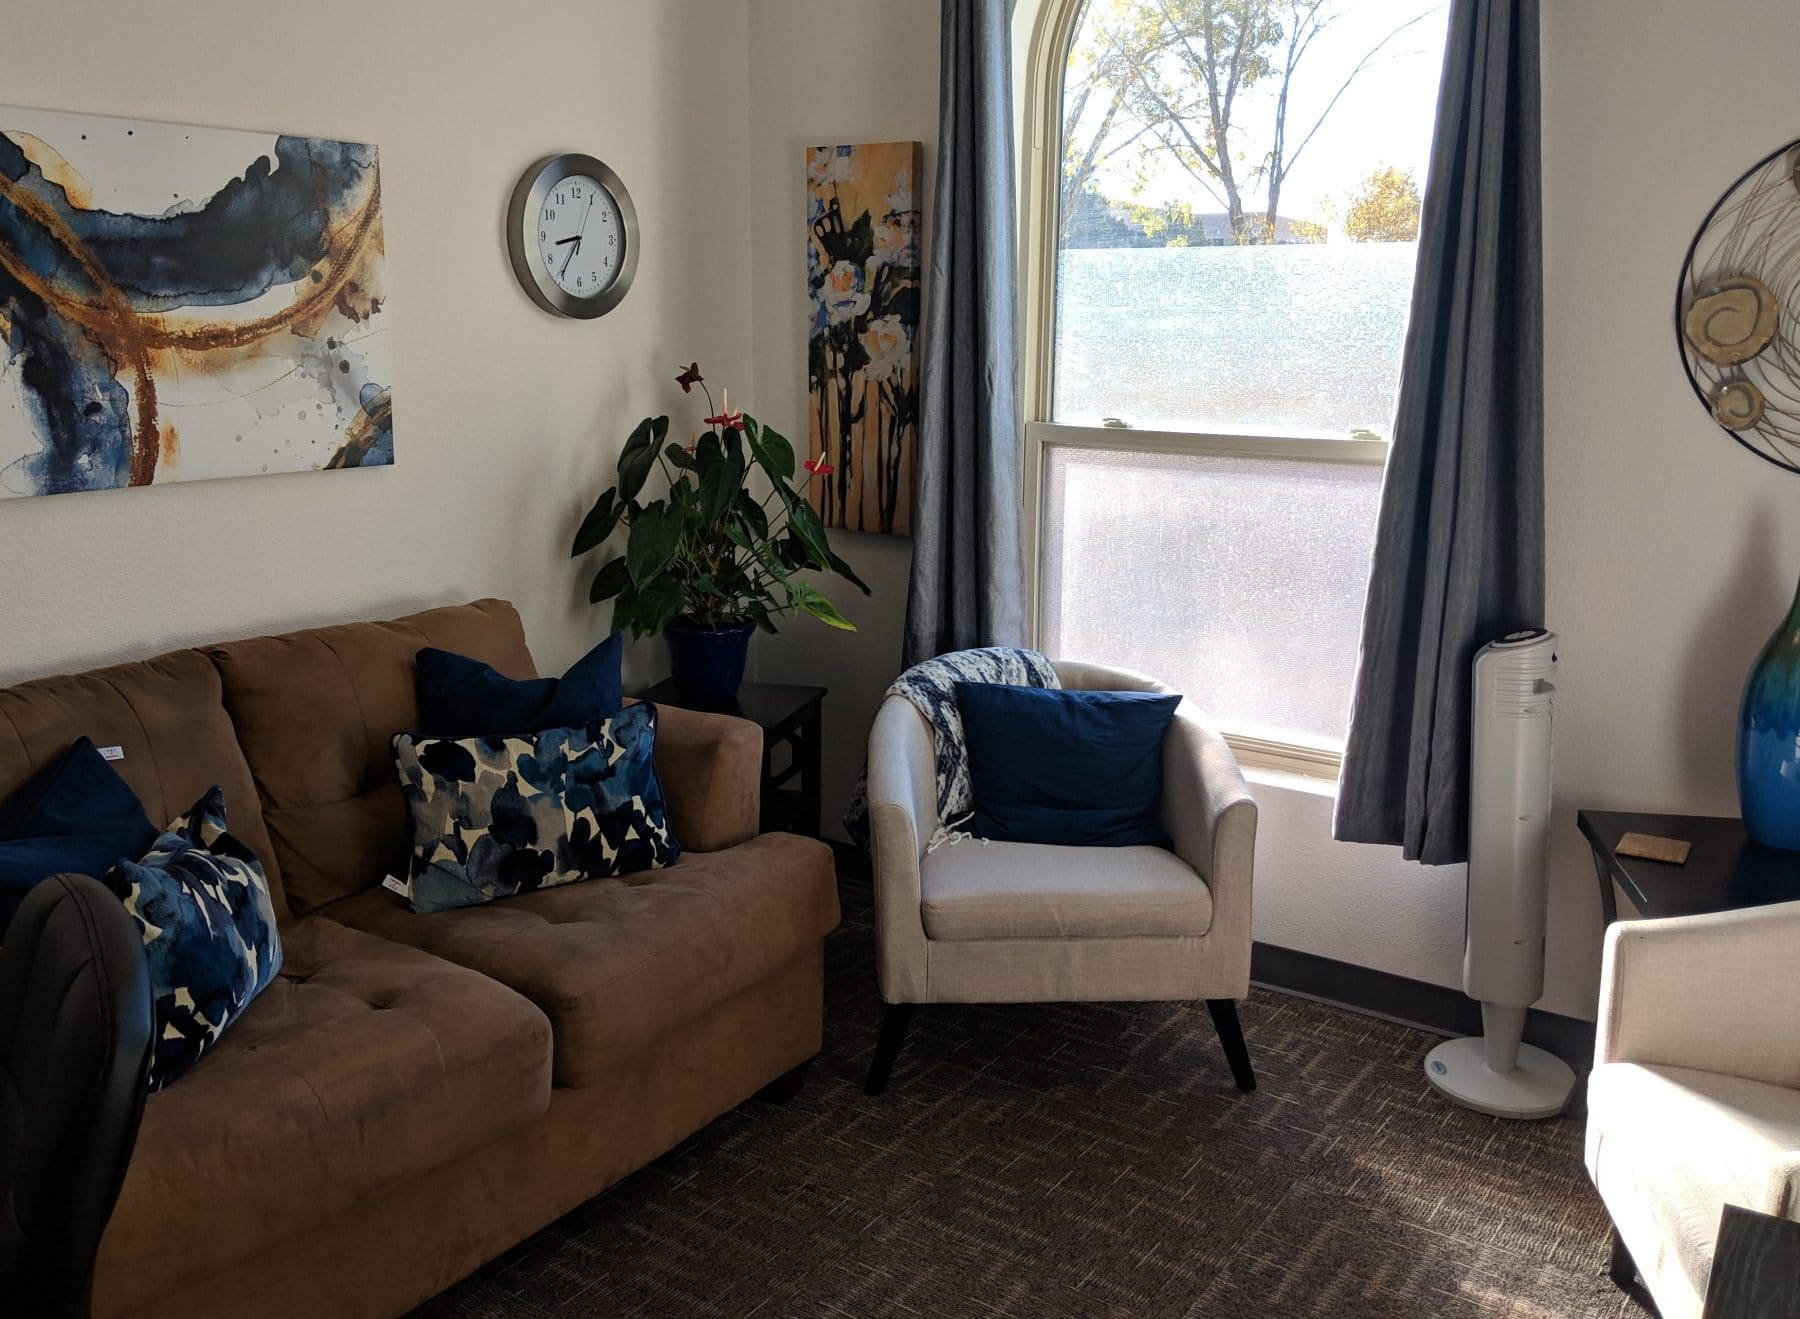 Therapy Room at Elevation Counseling in Albuquerque for individual therapy, couples counseling, family counseling, mental health therapy.